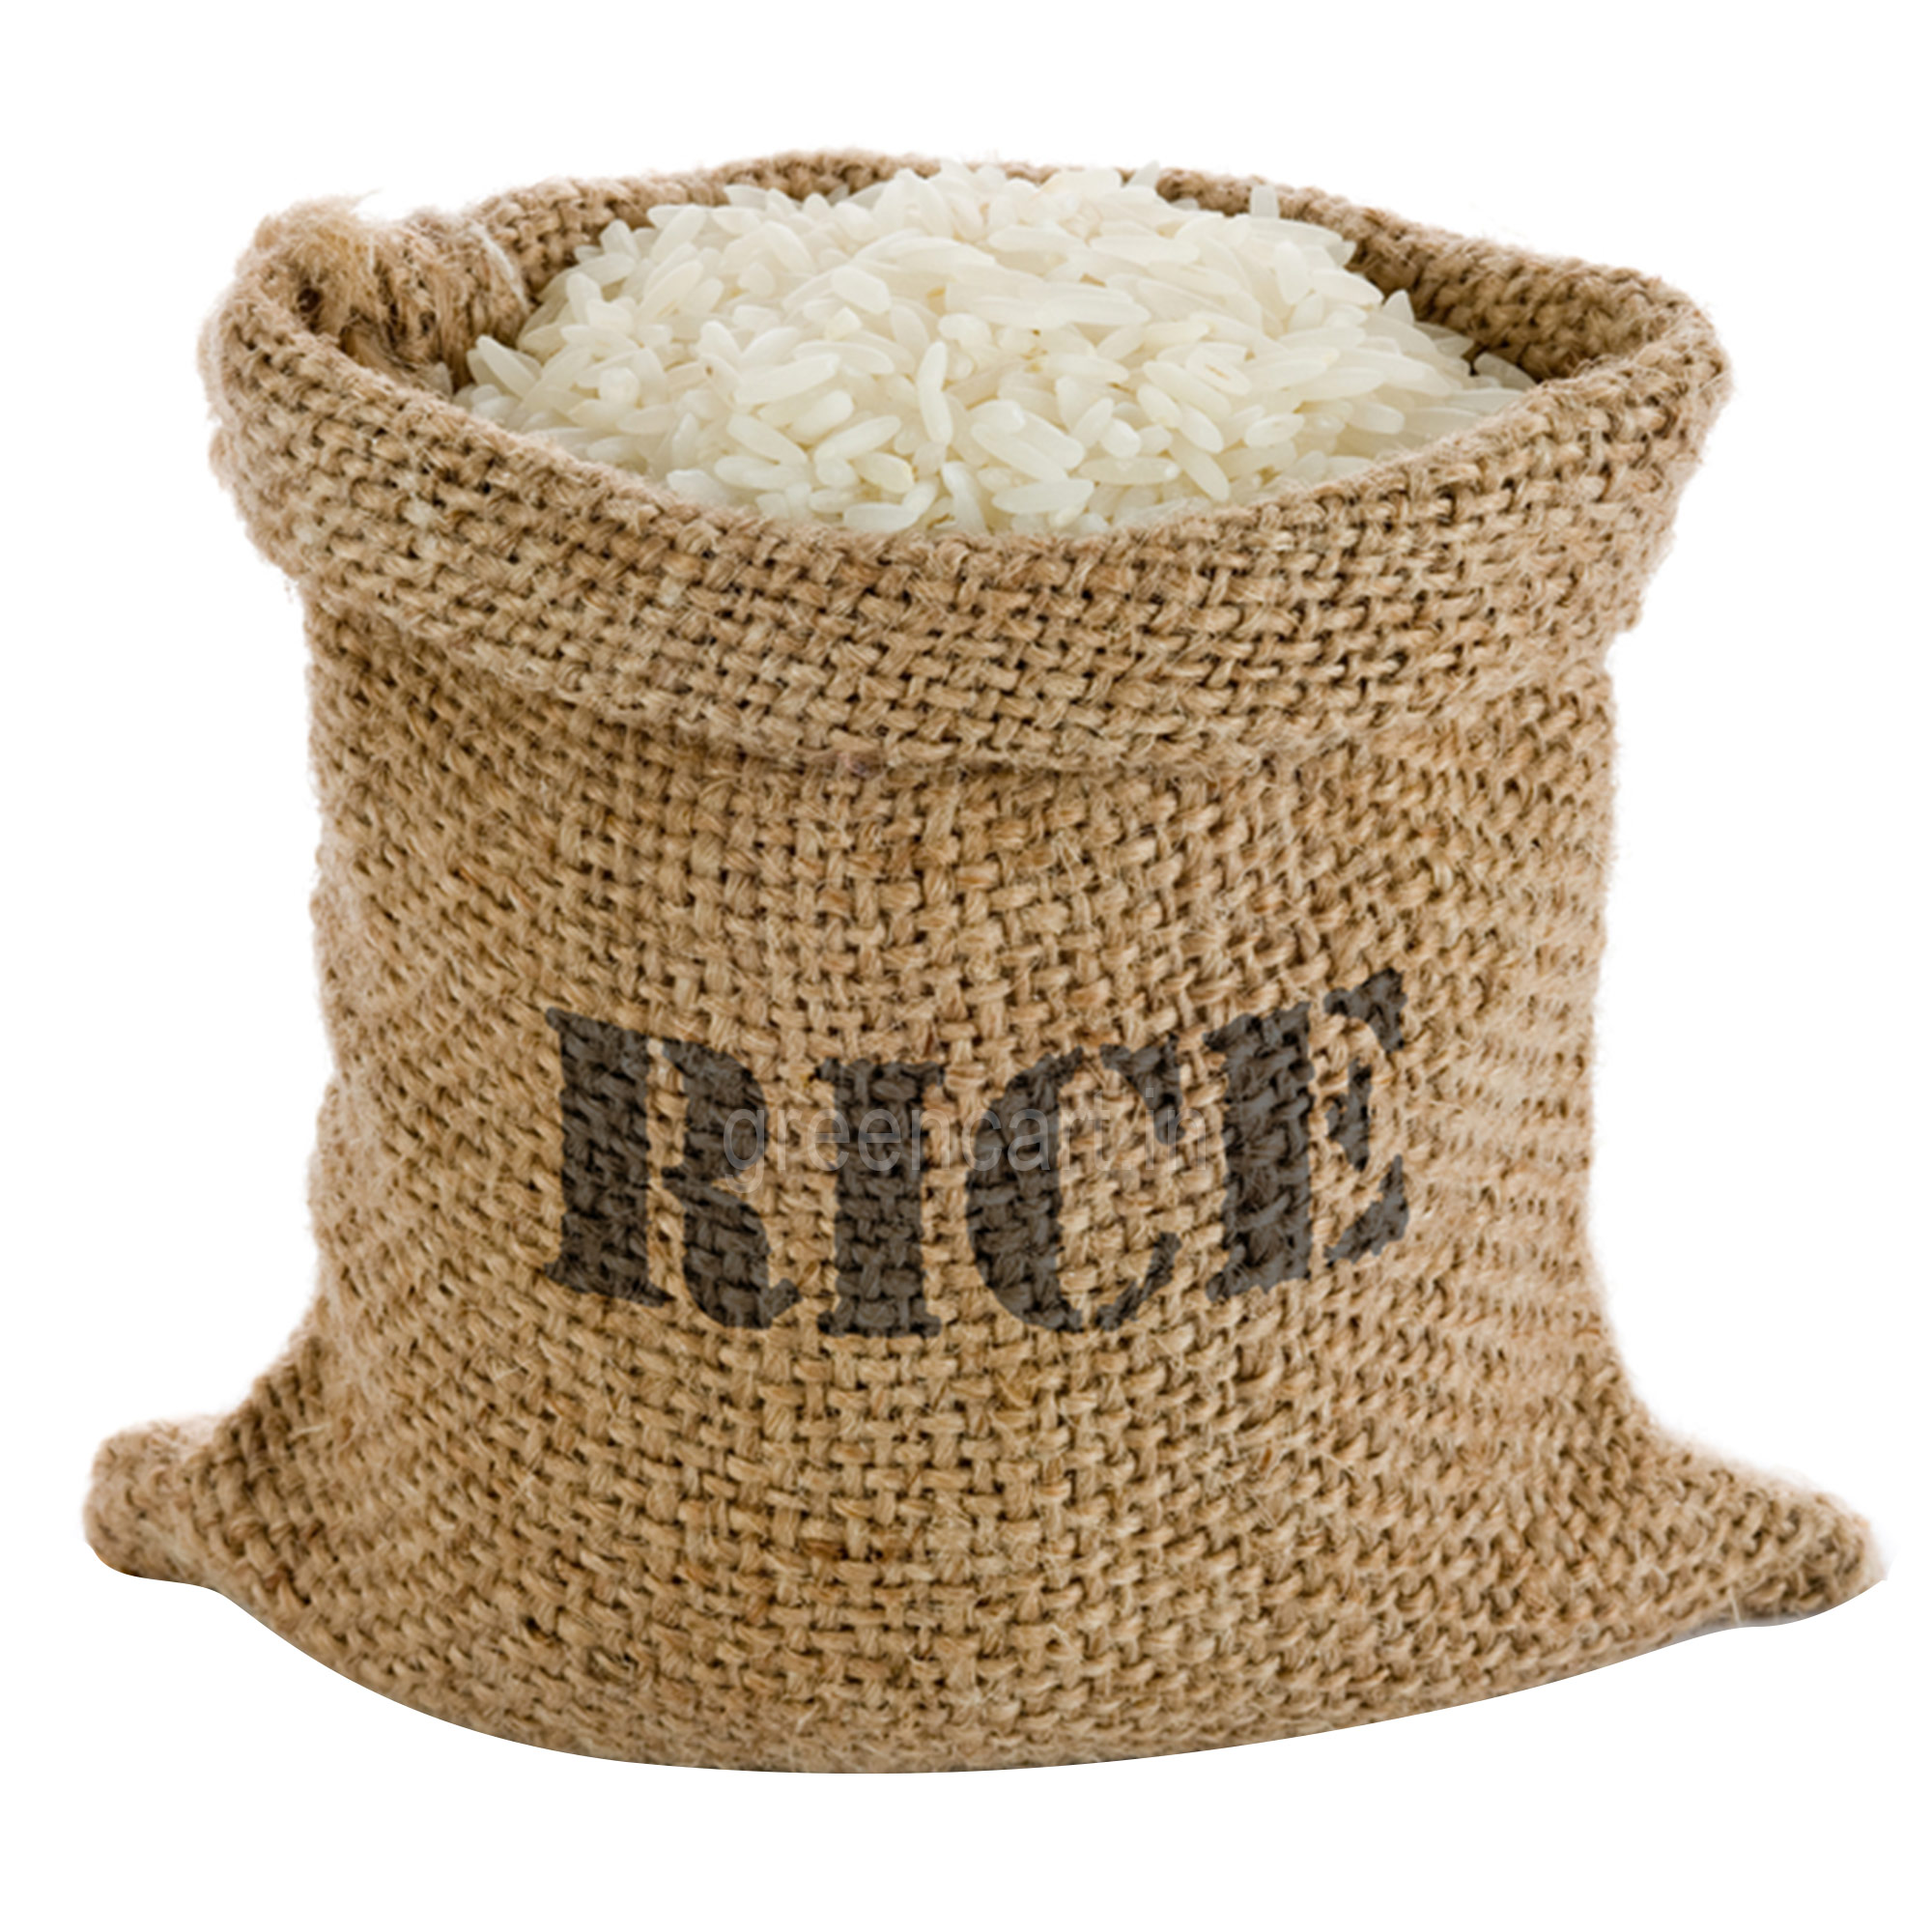 Sack of rice clipart clip art freeuse Sack Of Rice PNG Transparent Sack Of Rice.PNG Images. | PlusPNG clip art freeuse